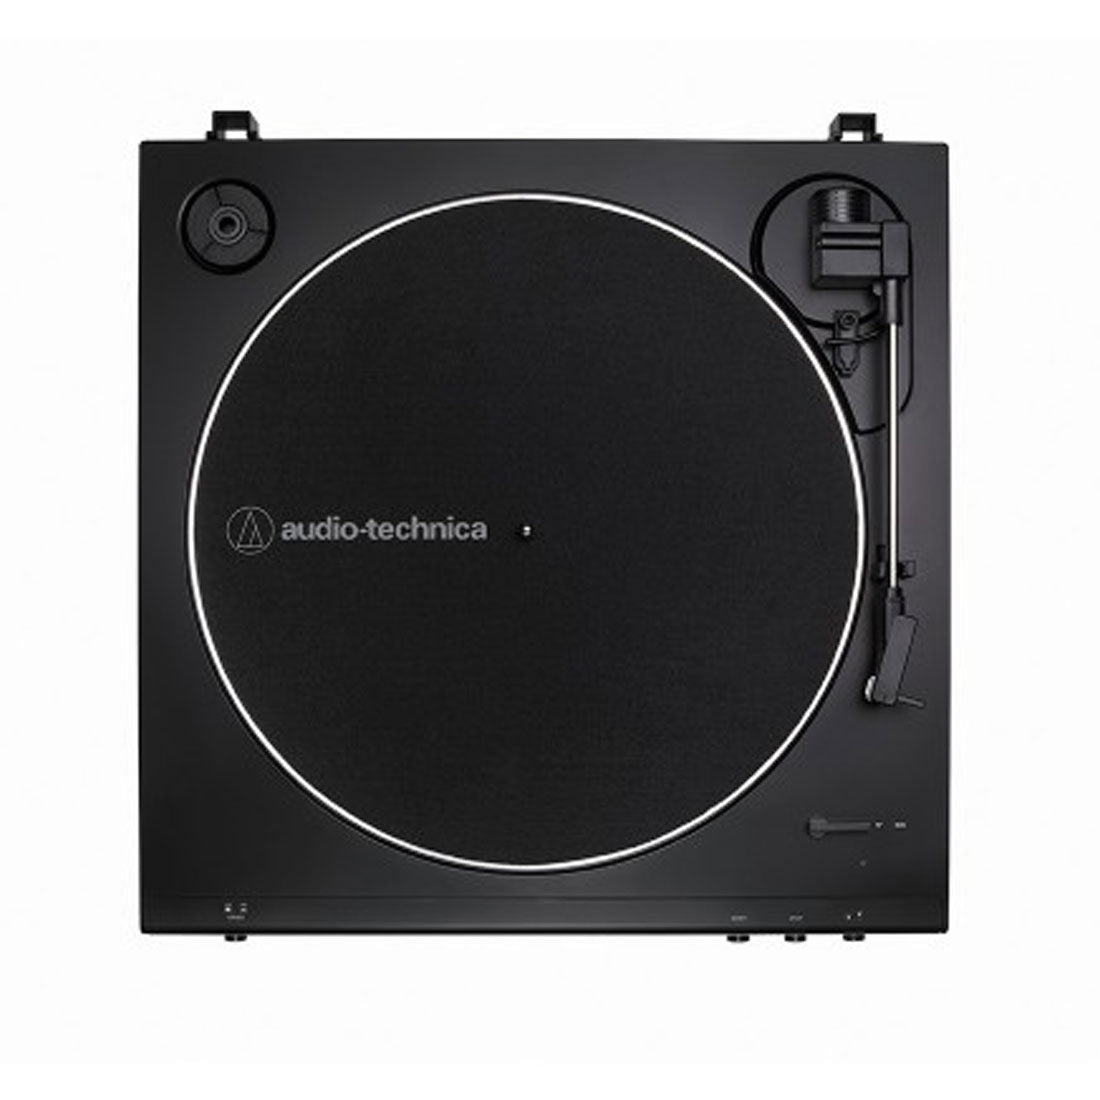 AUDIO-TECHNICA AT-LP60X FULLY AUTOMATIC BELT-DRIVE TURNTABLE